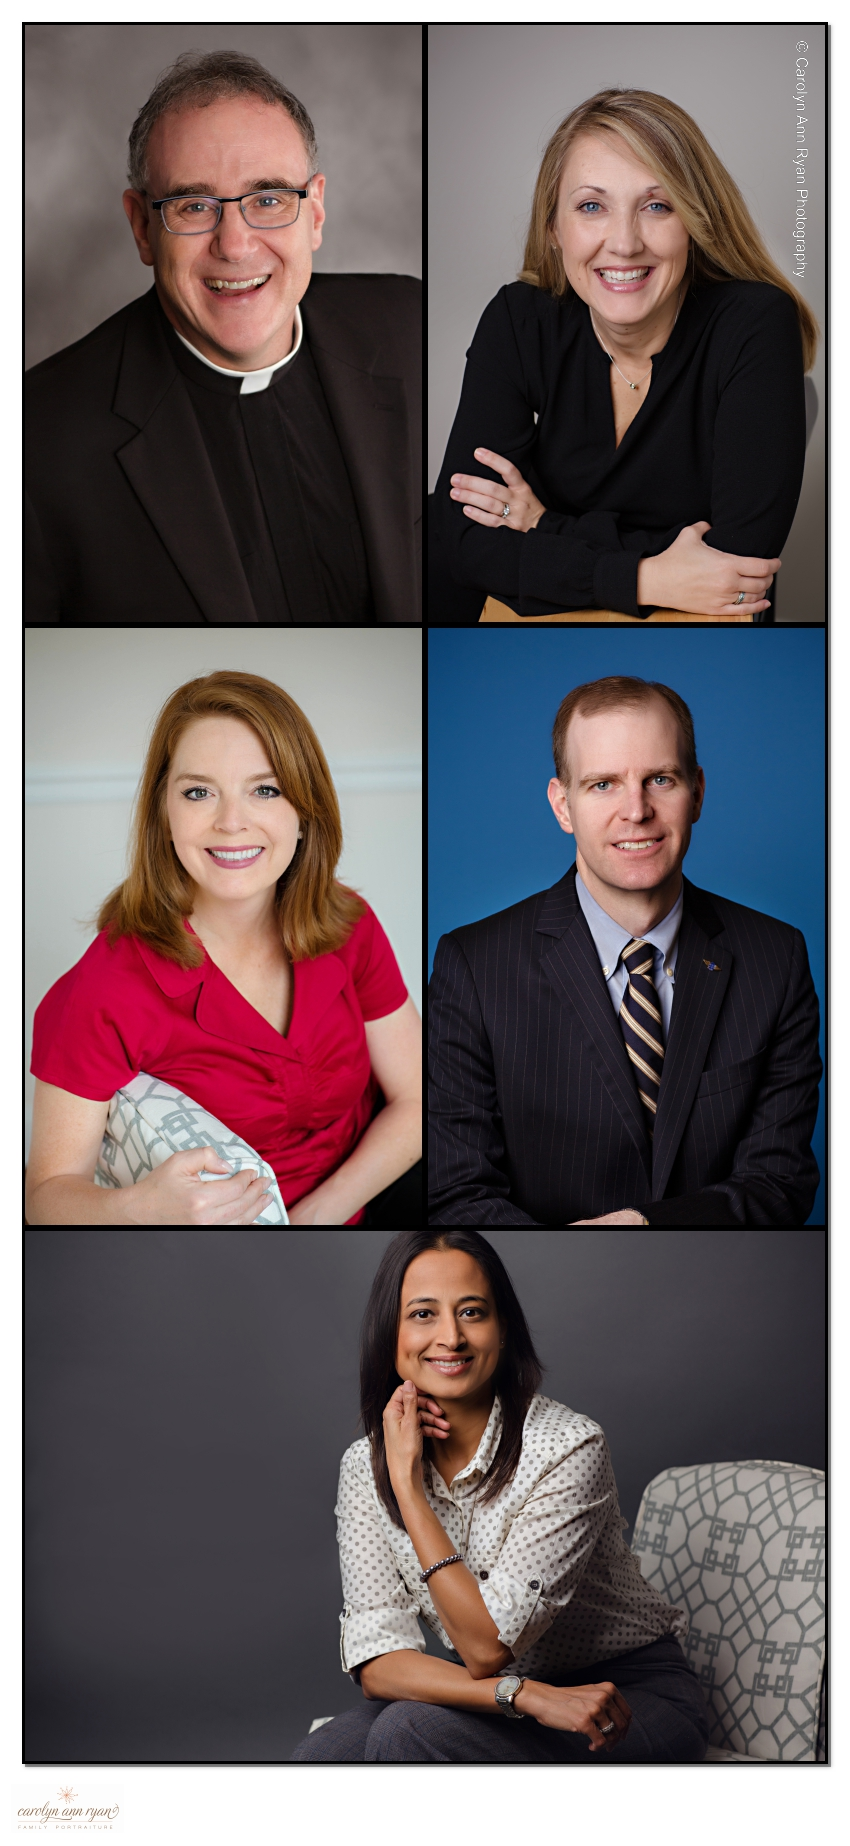 Professional Business Portraits in Charlotte